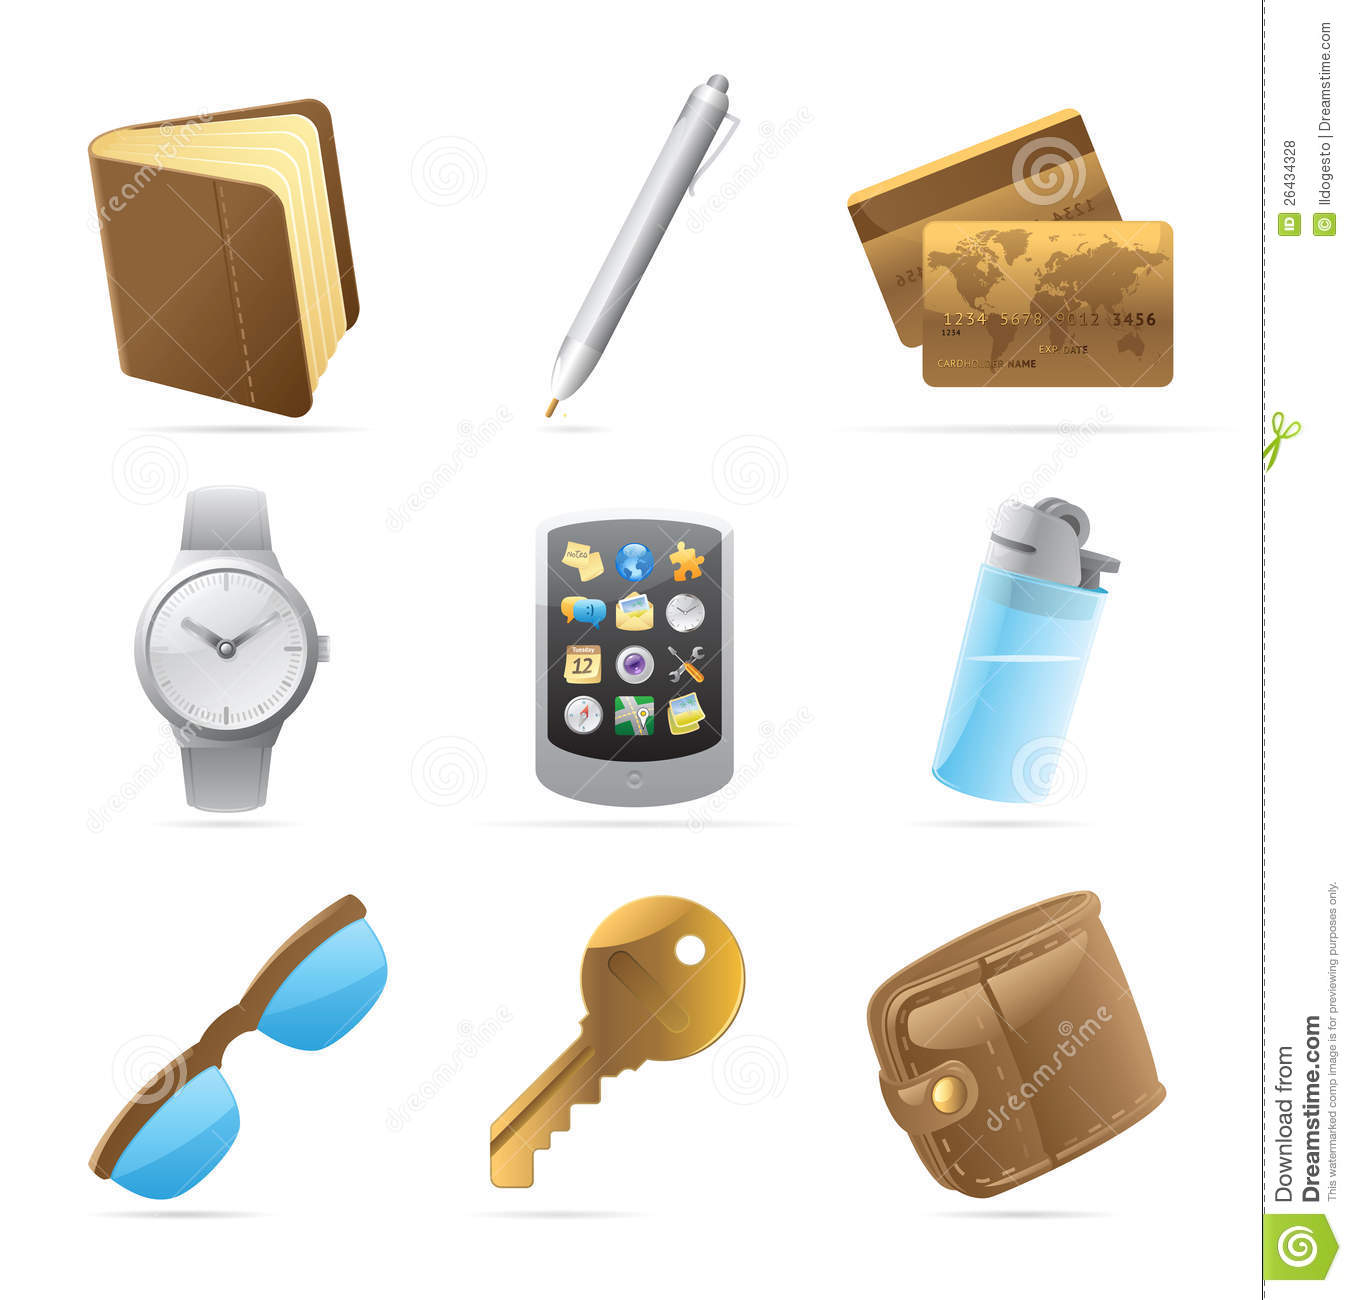 icons for personal belongings stock vector image 26434328 pocket watch clip art borders pocket watch clip art borders